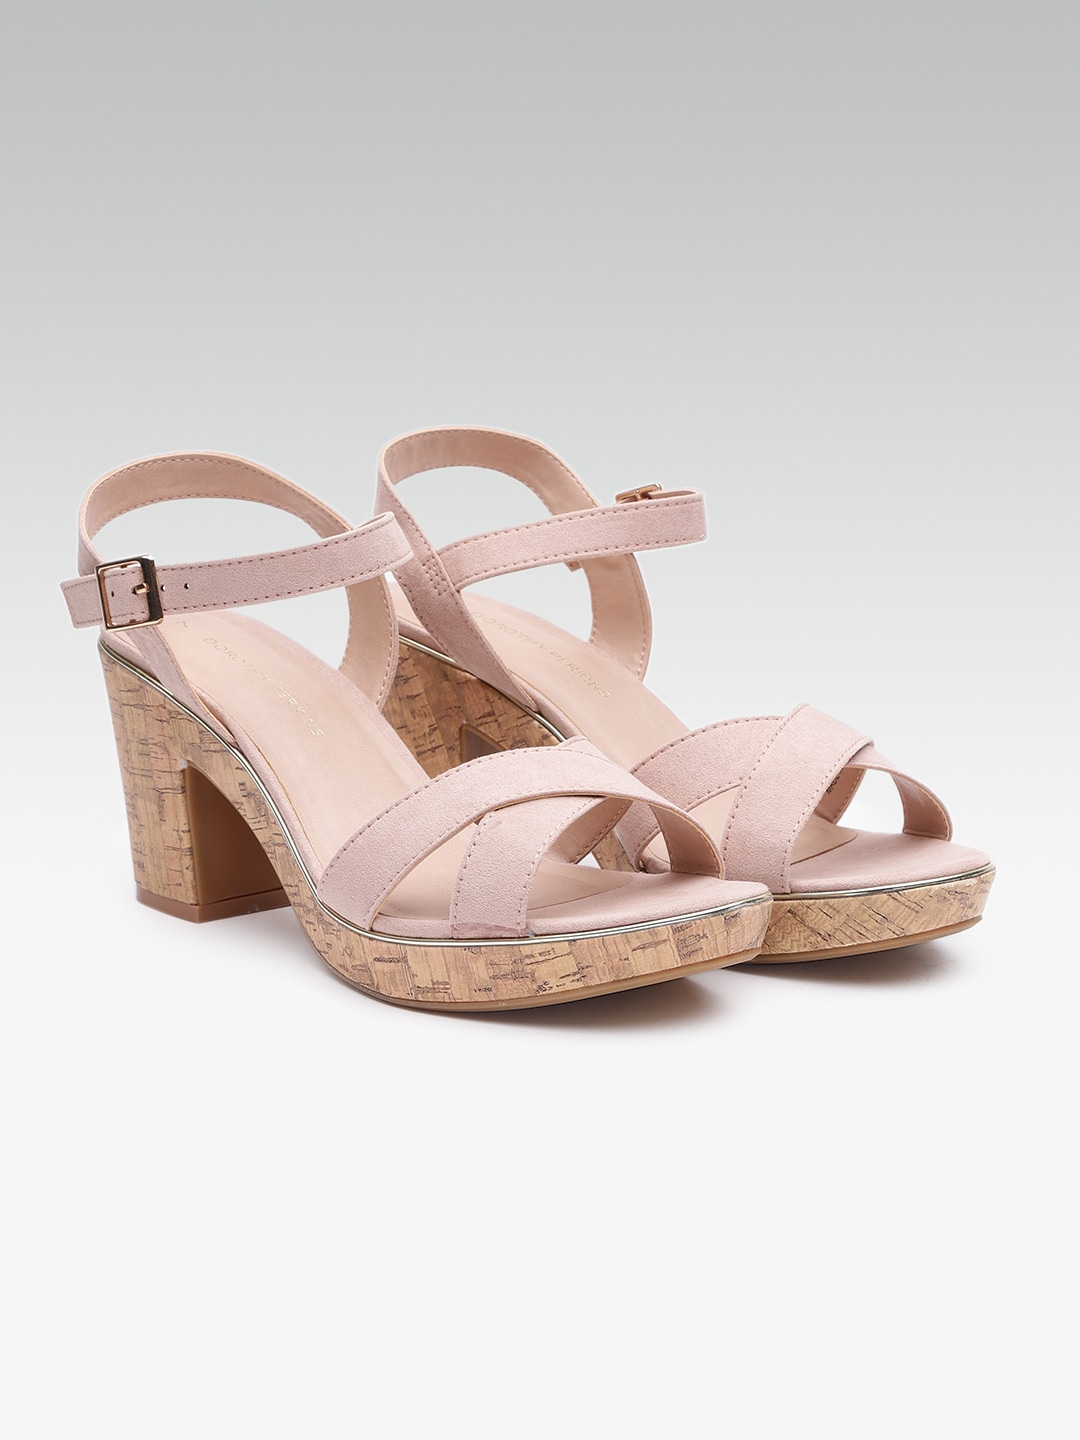 DOROTHY PERKINS Women Dusty Pink Solid Sandals